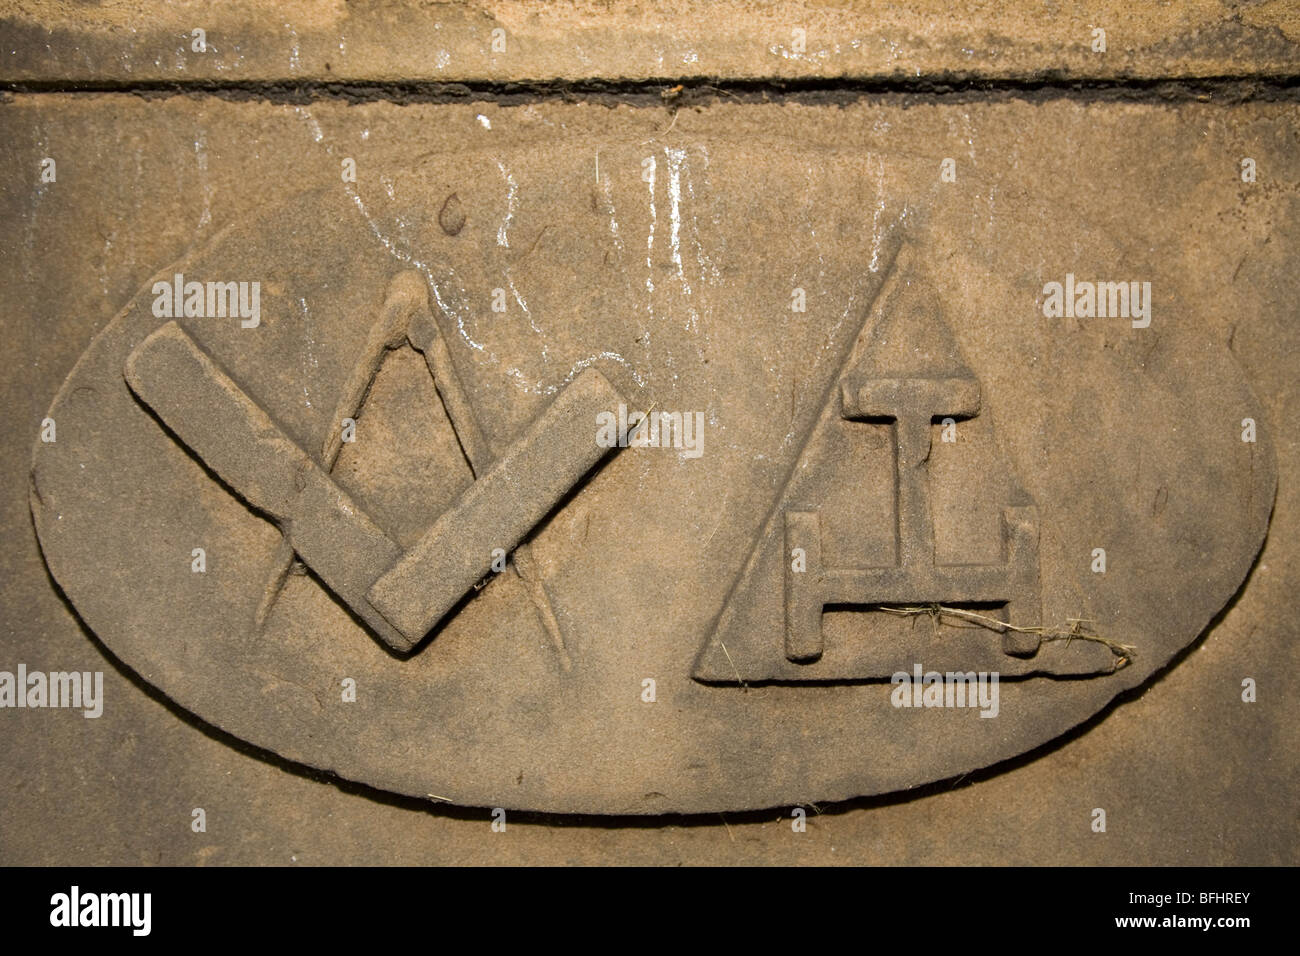 Two Of The Symbols Found In Freemasonry The Compasses And Triple